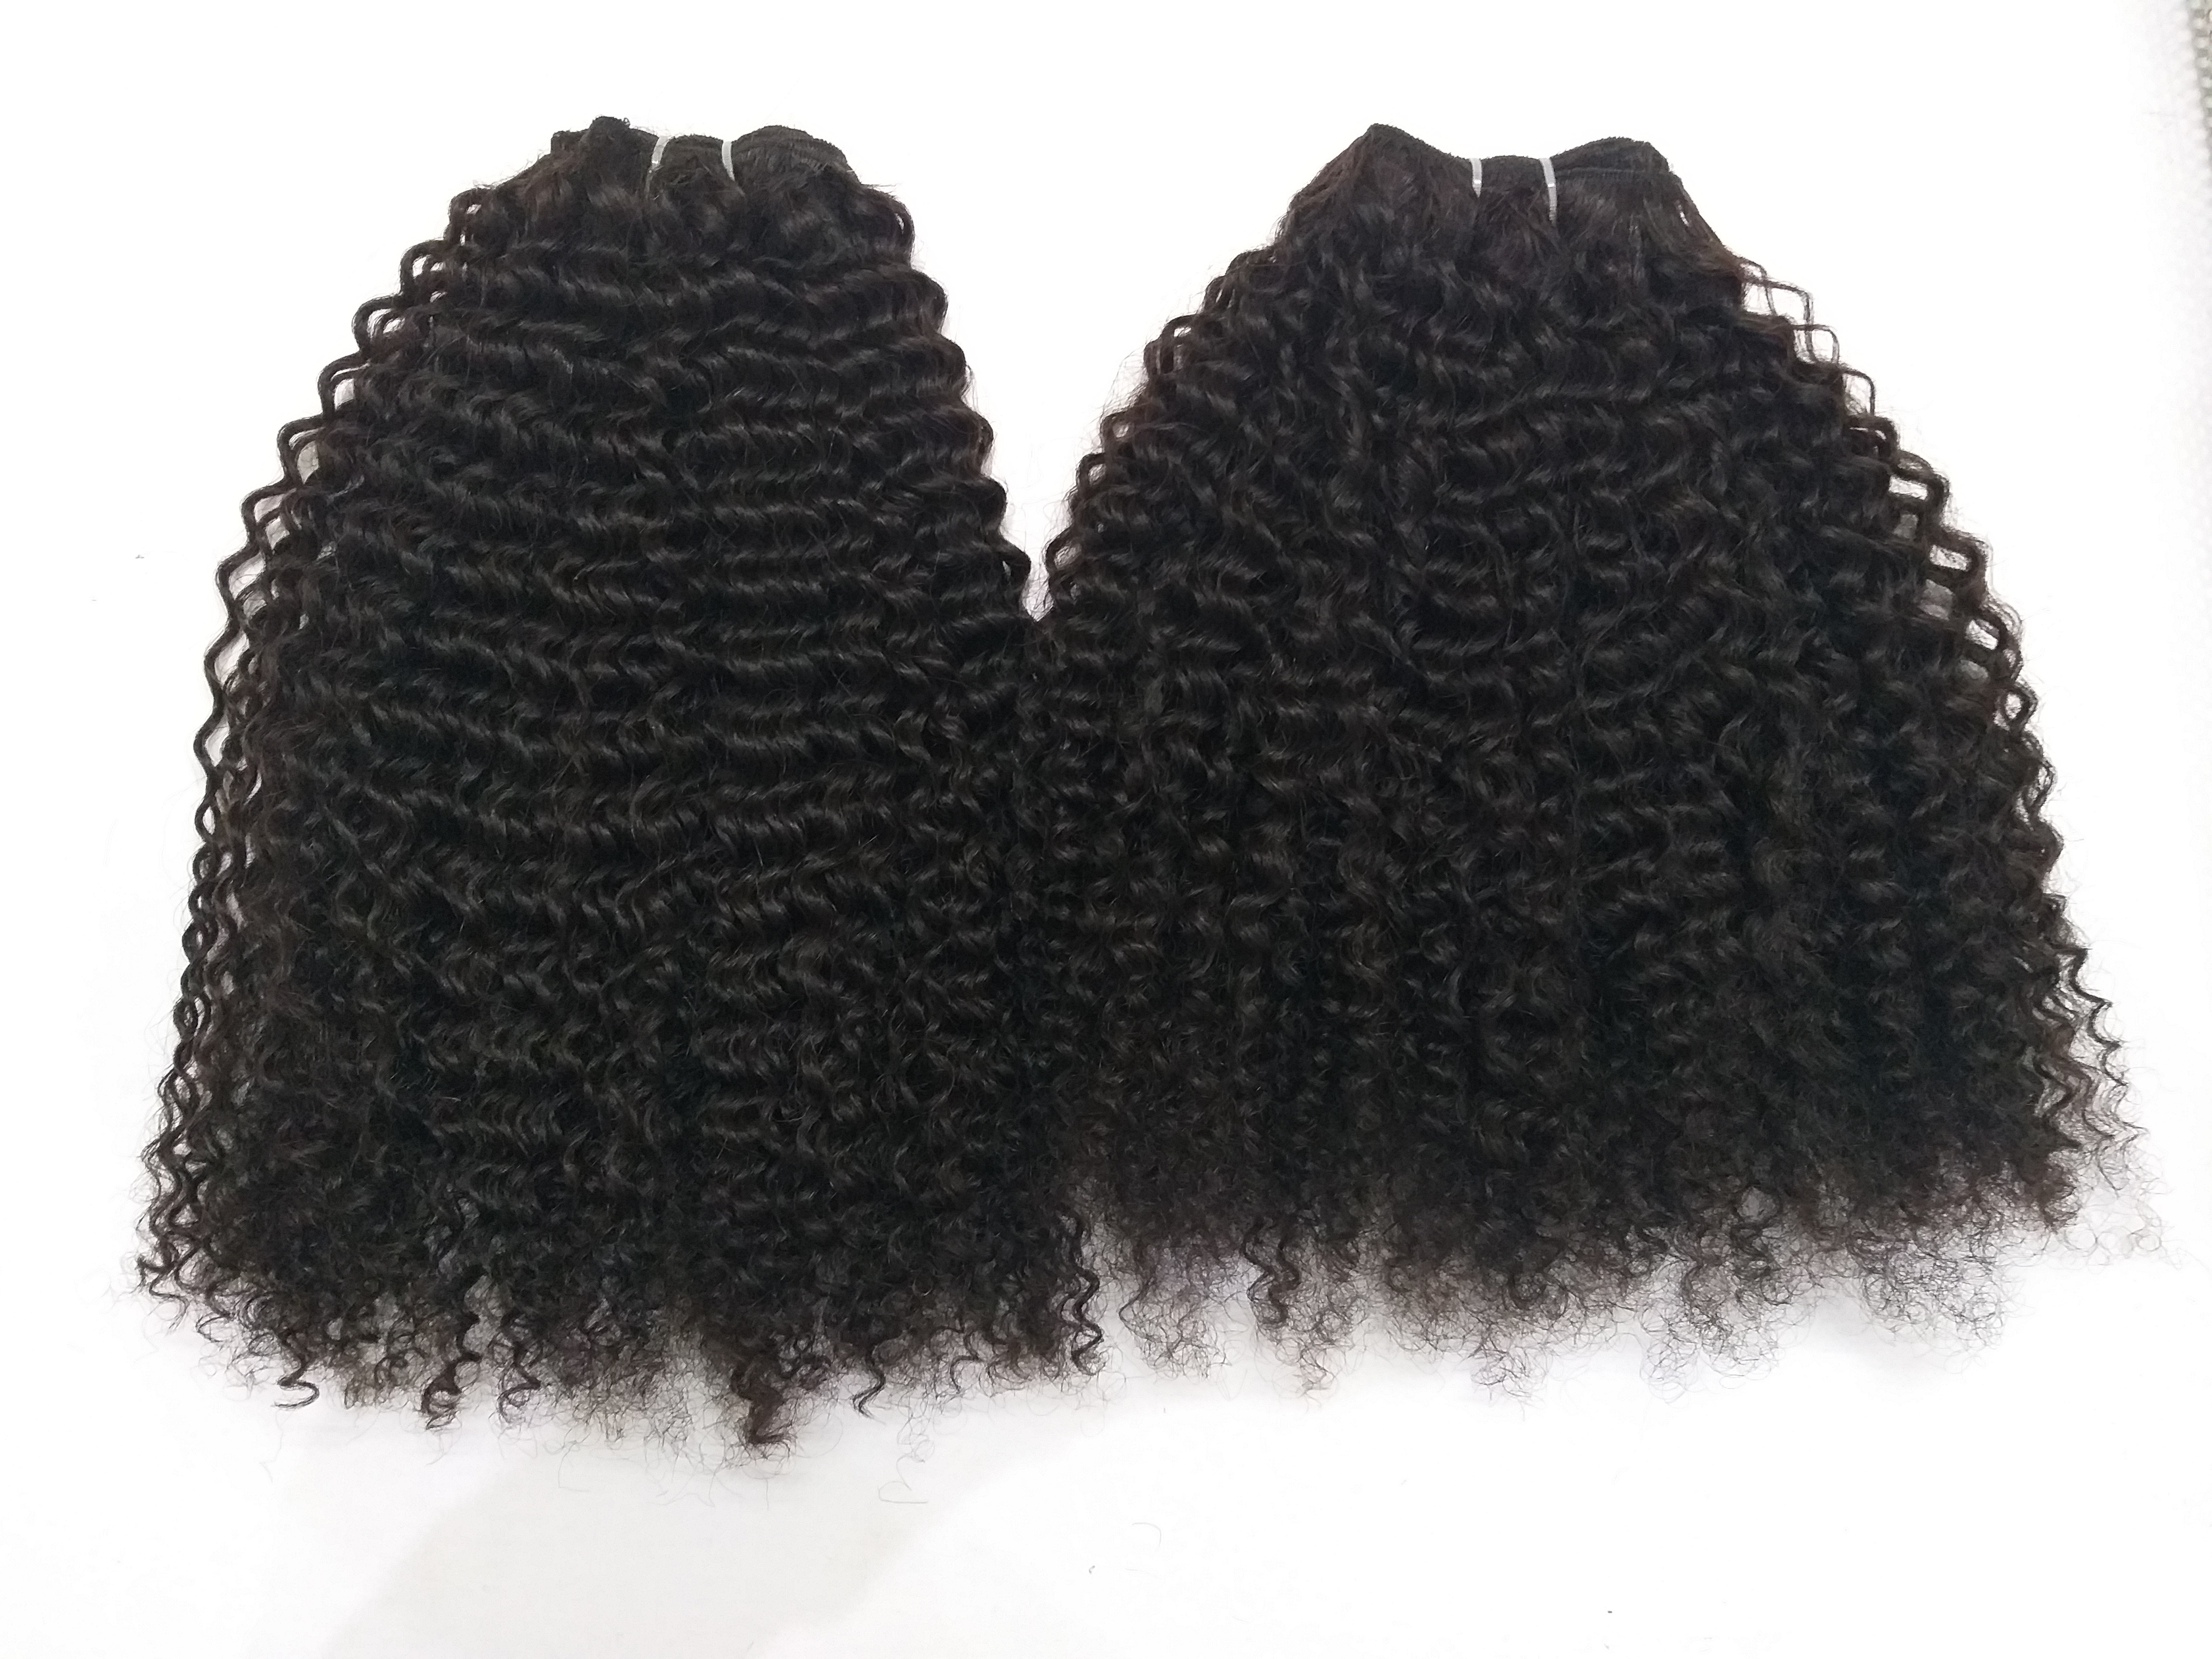 Processed Kinky Curly Hair